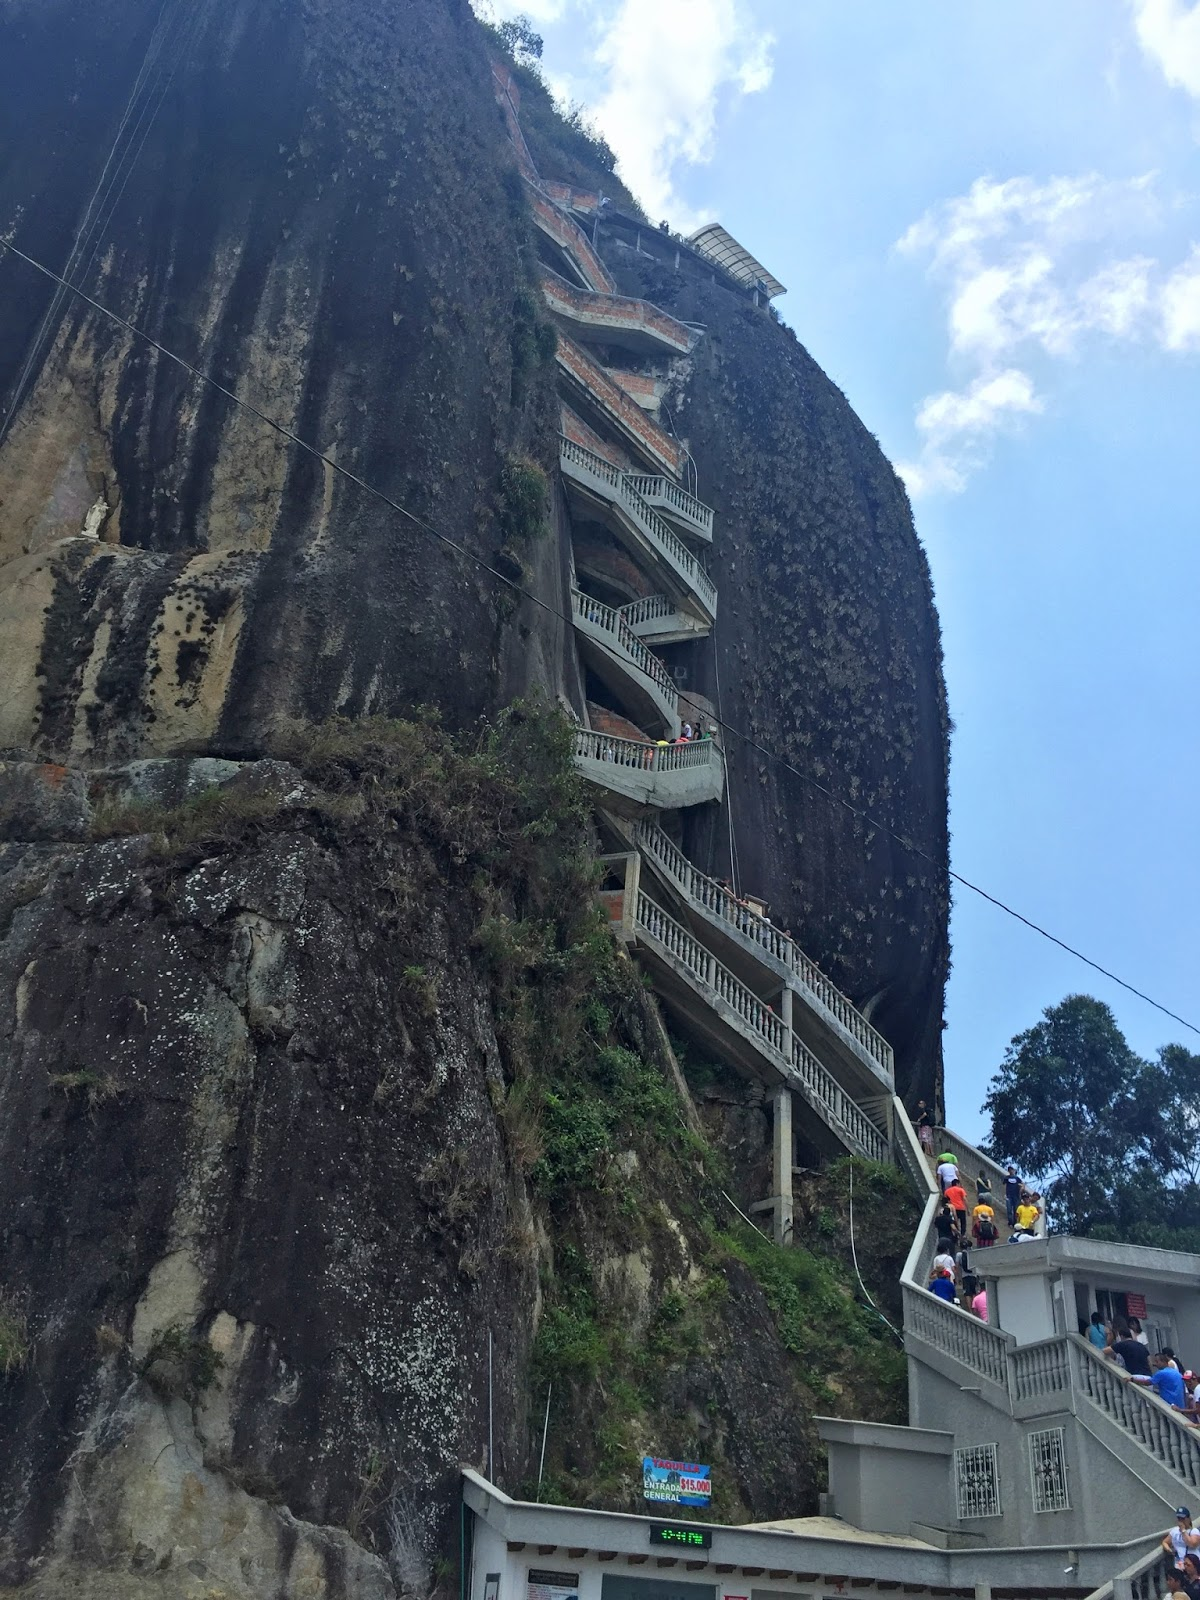 The beautiful Guatapé rock known as el Peñol de Guatapé